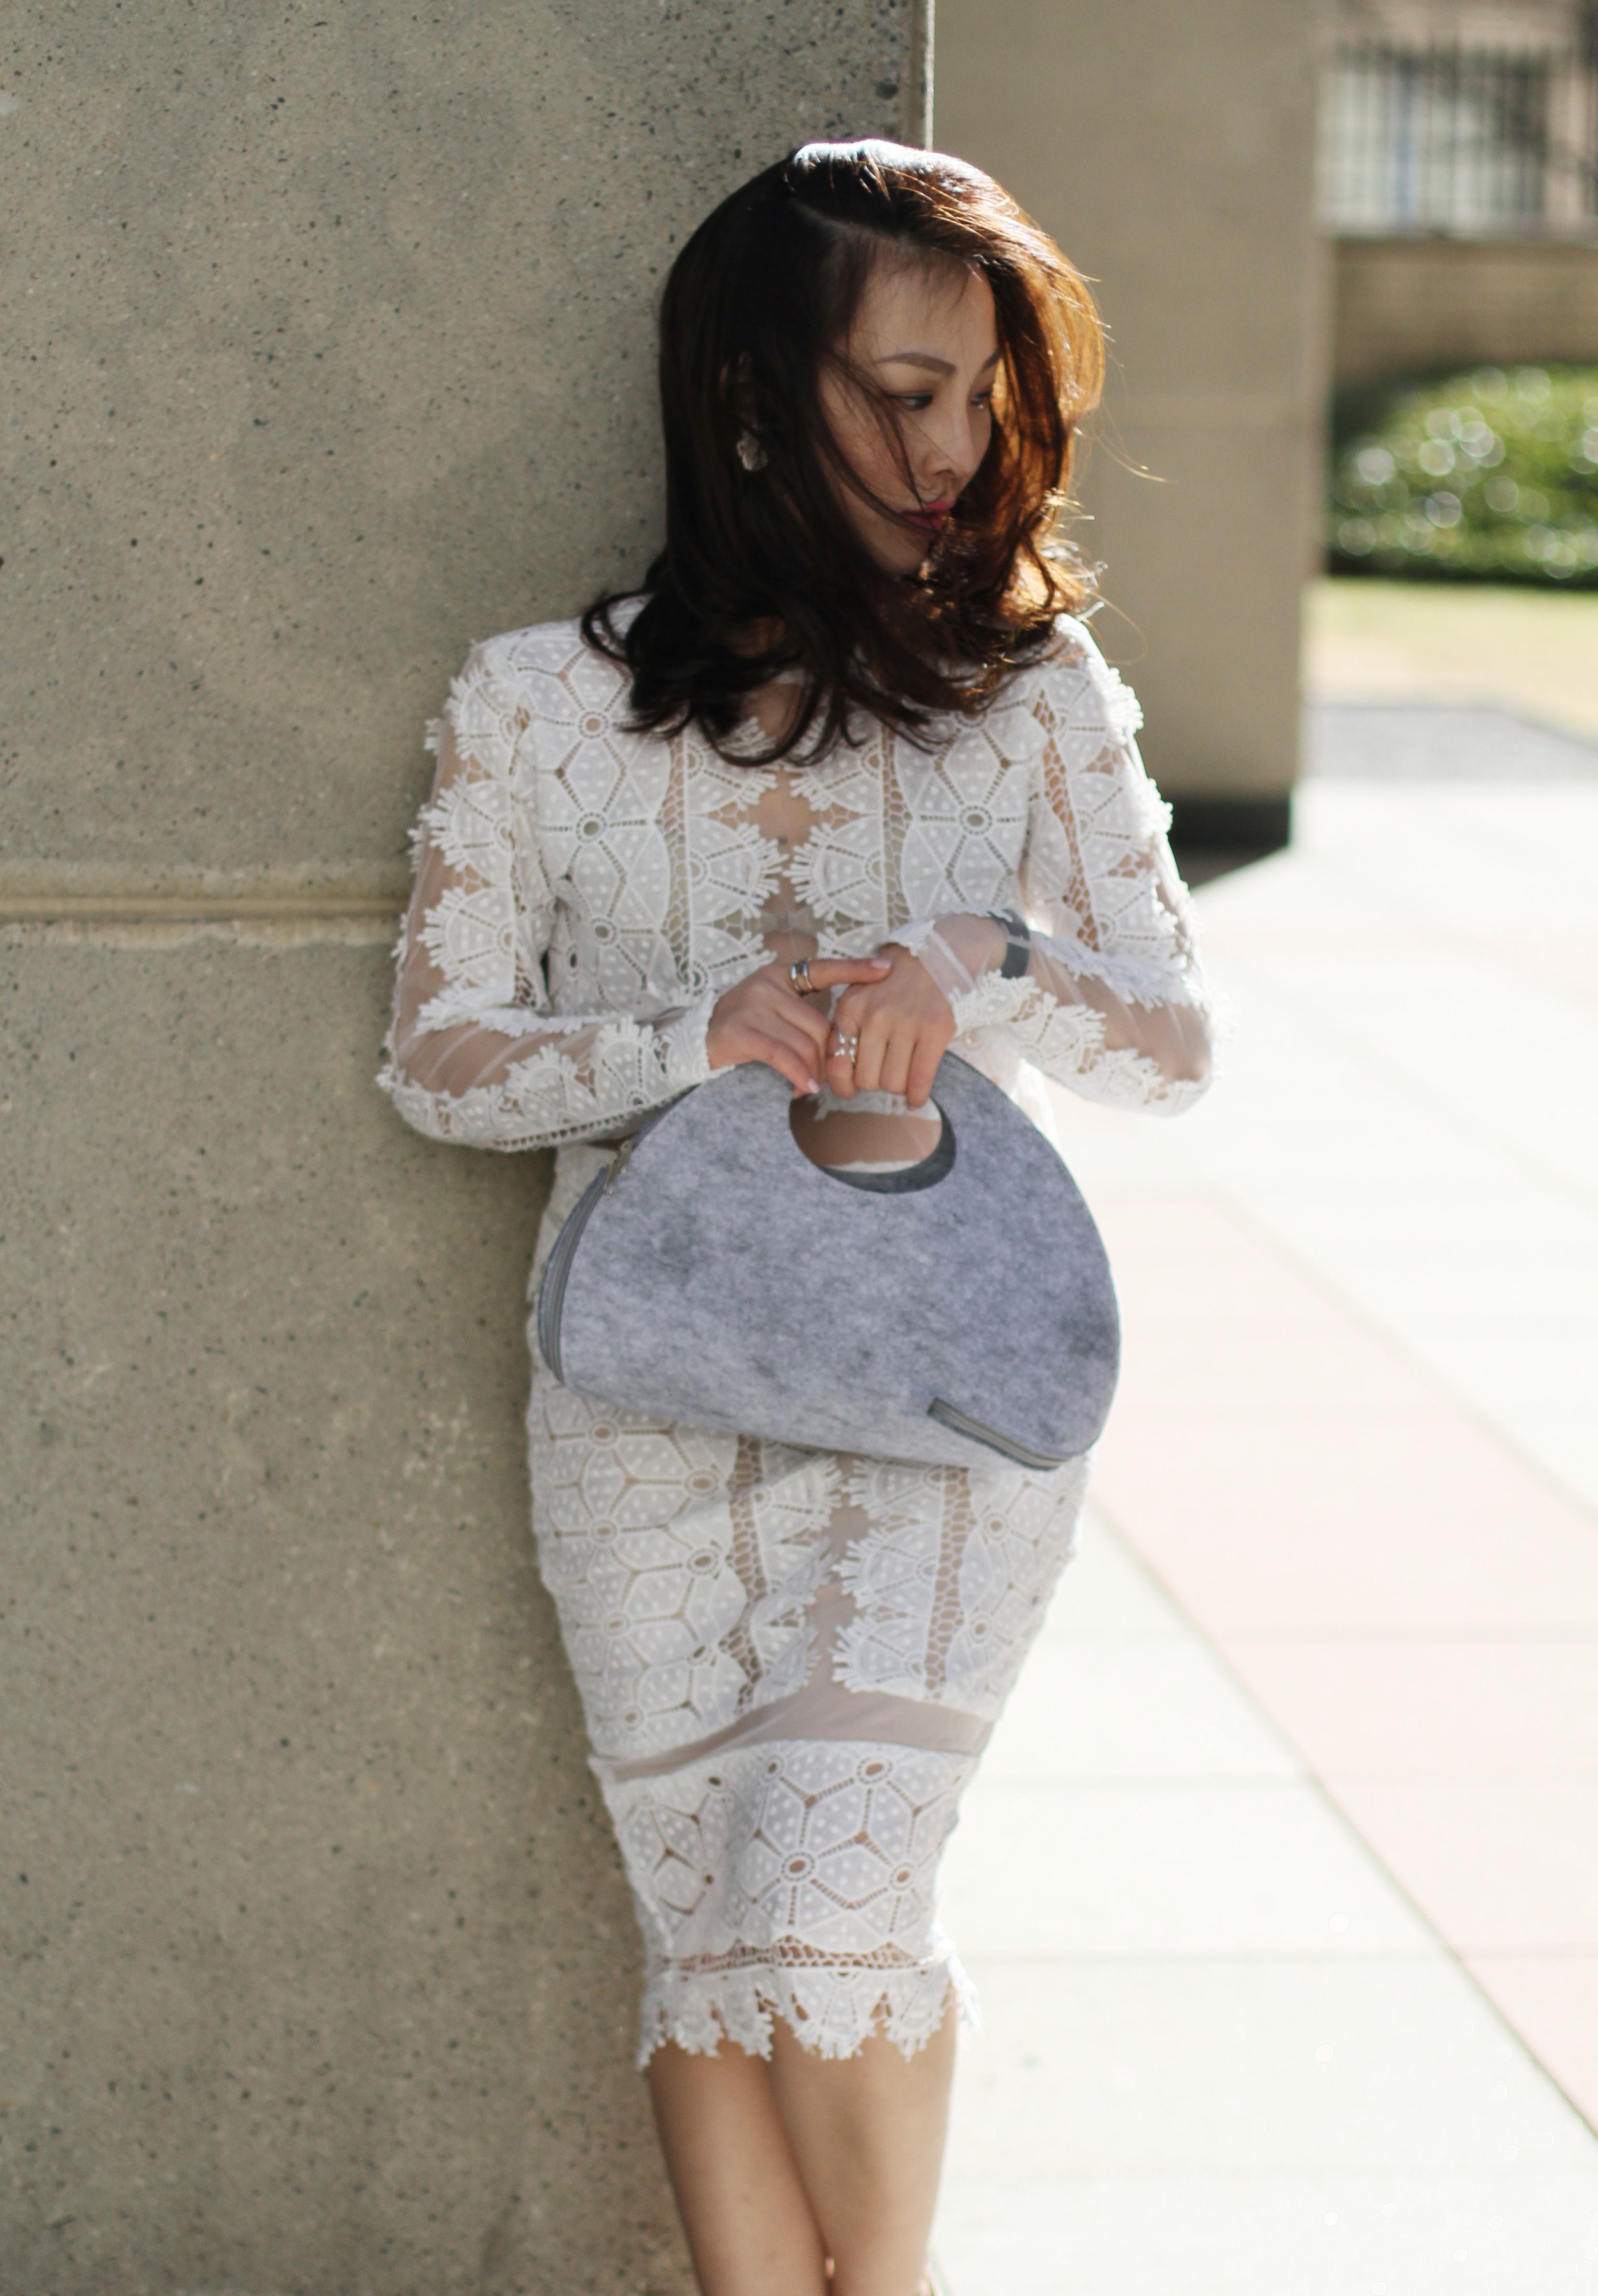 white lace top and skirt classy.jpg